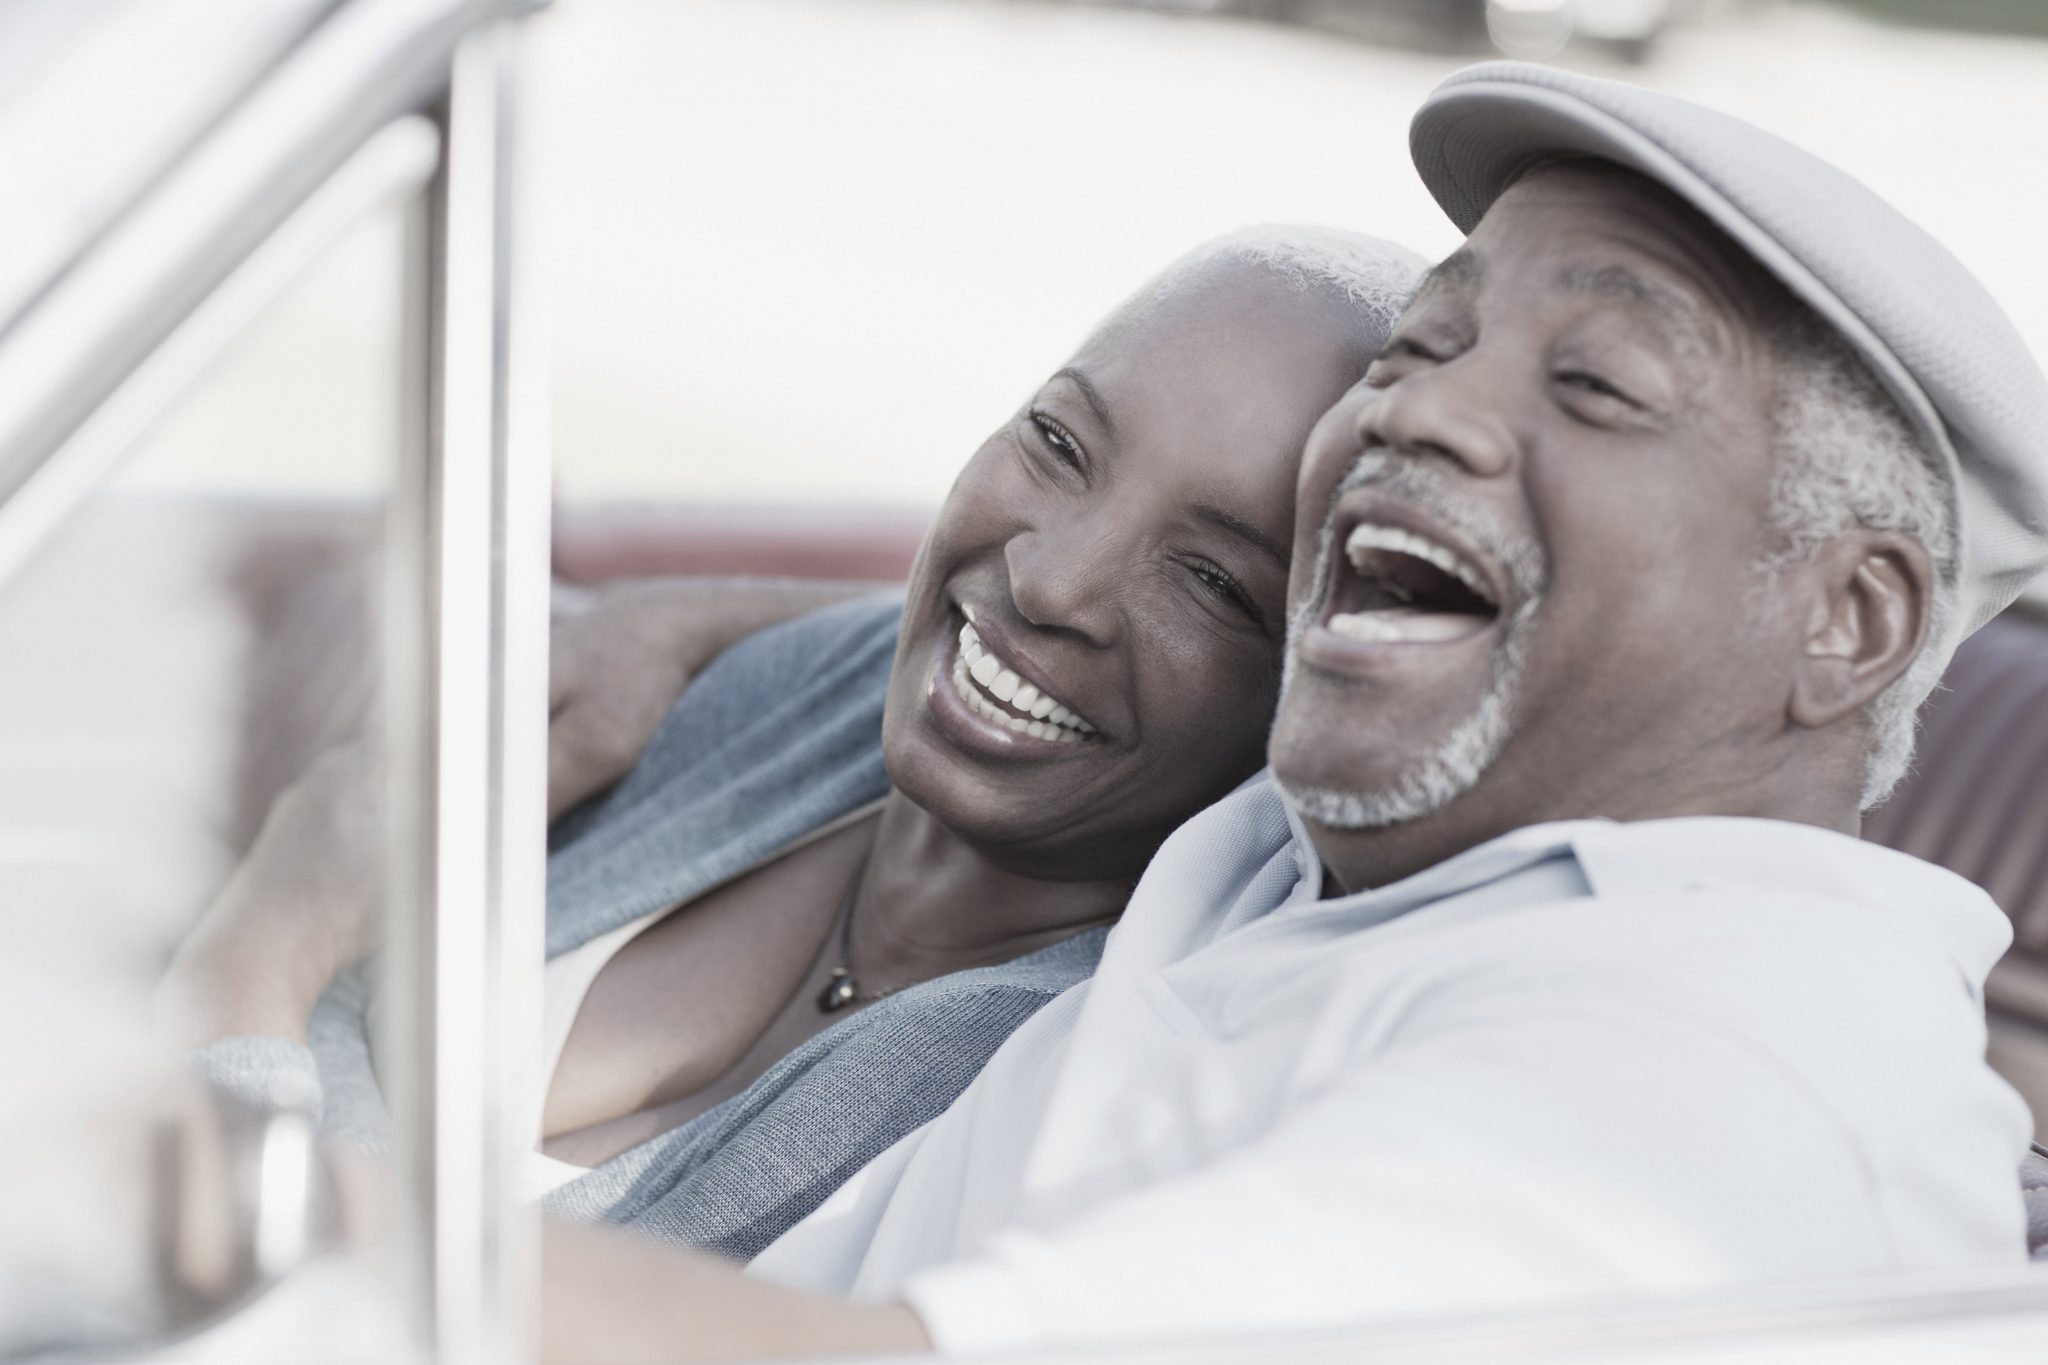 Smiling couple laughing in car